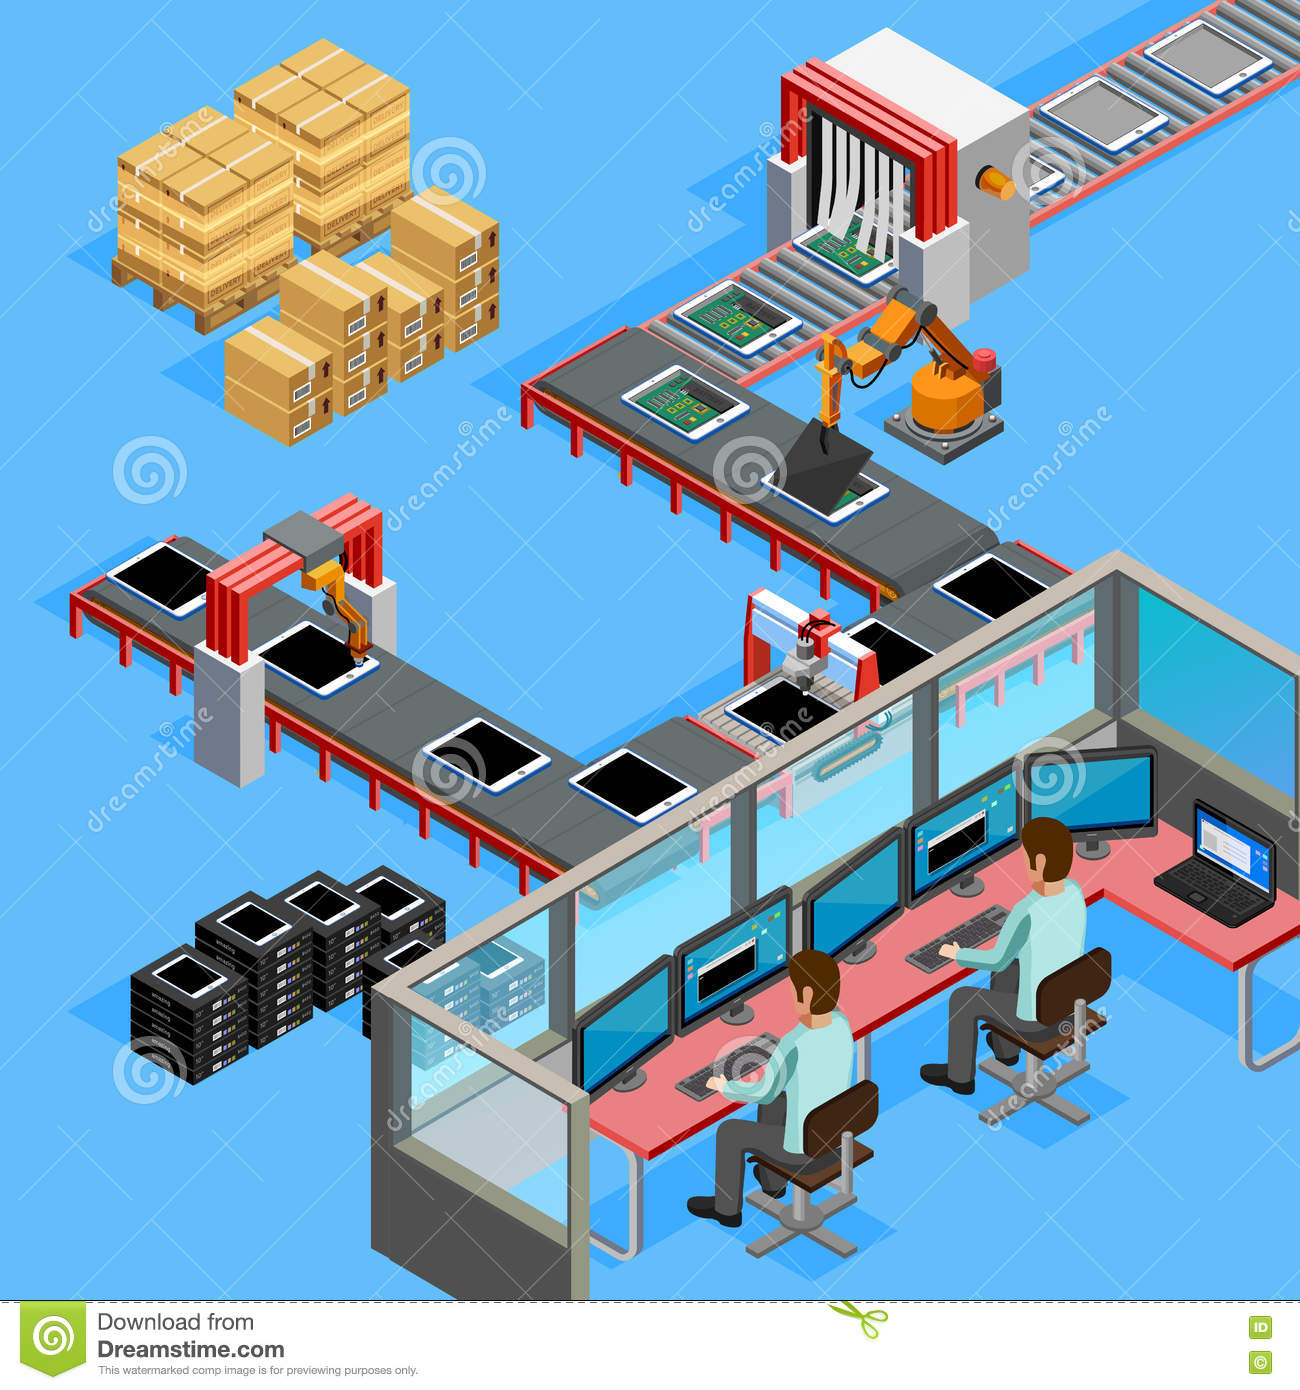 Drawing Lines In Processing : Conveyor manufacturing line operators isometric poster